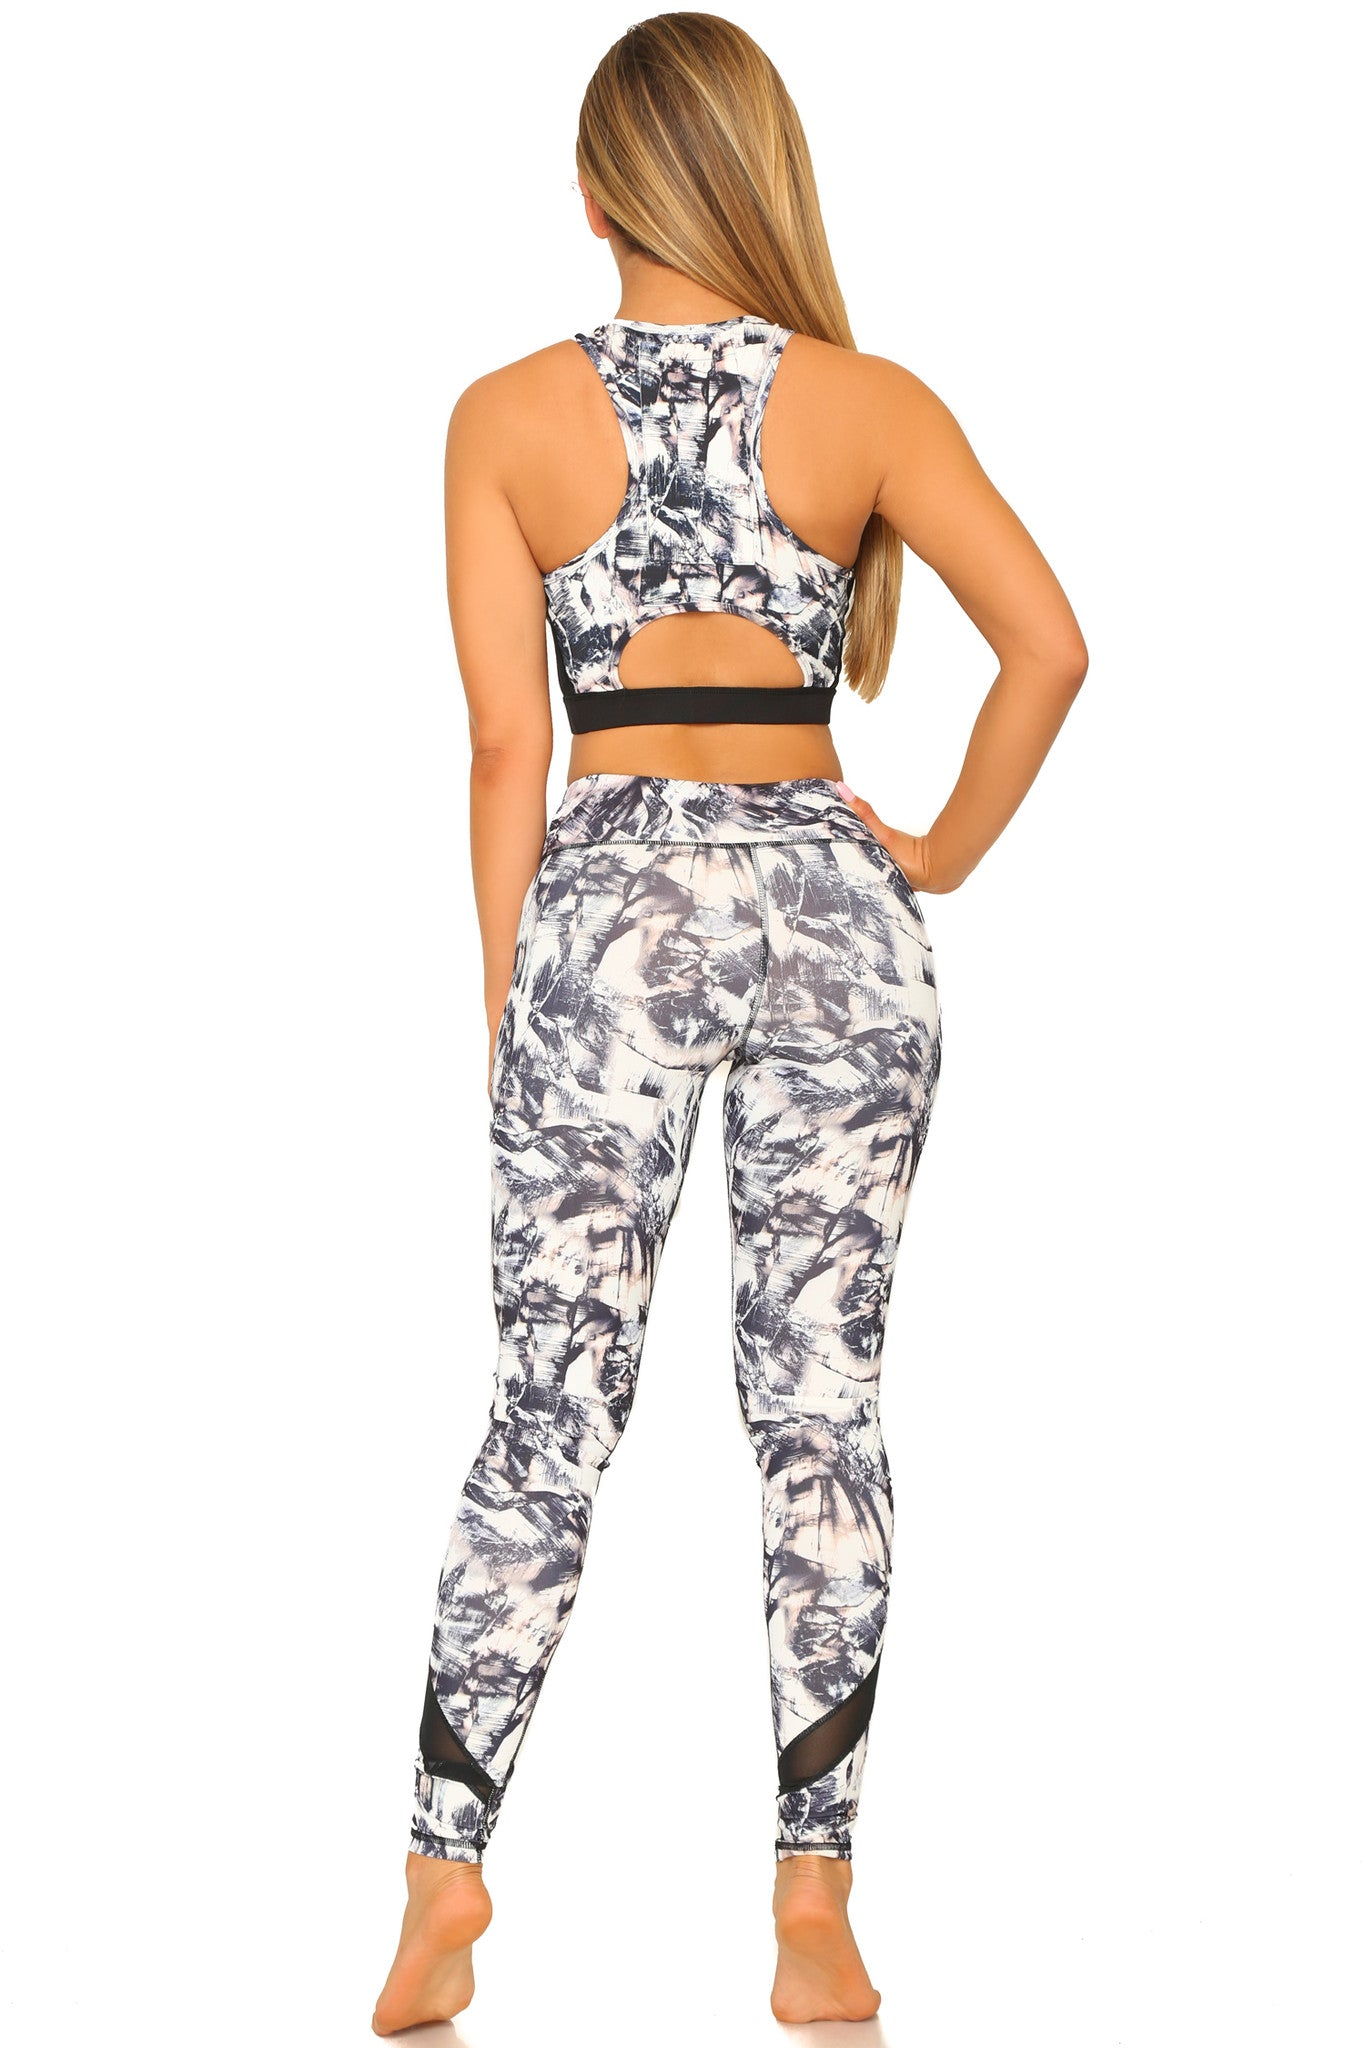 ABIGAIL WORKOUT SET - Glam Envy - 3